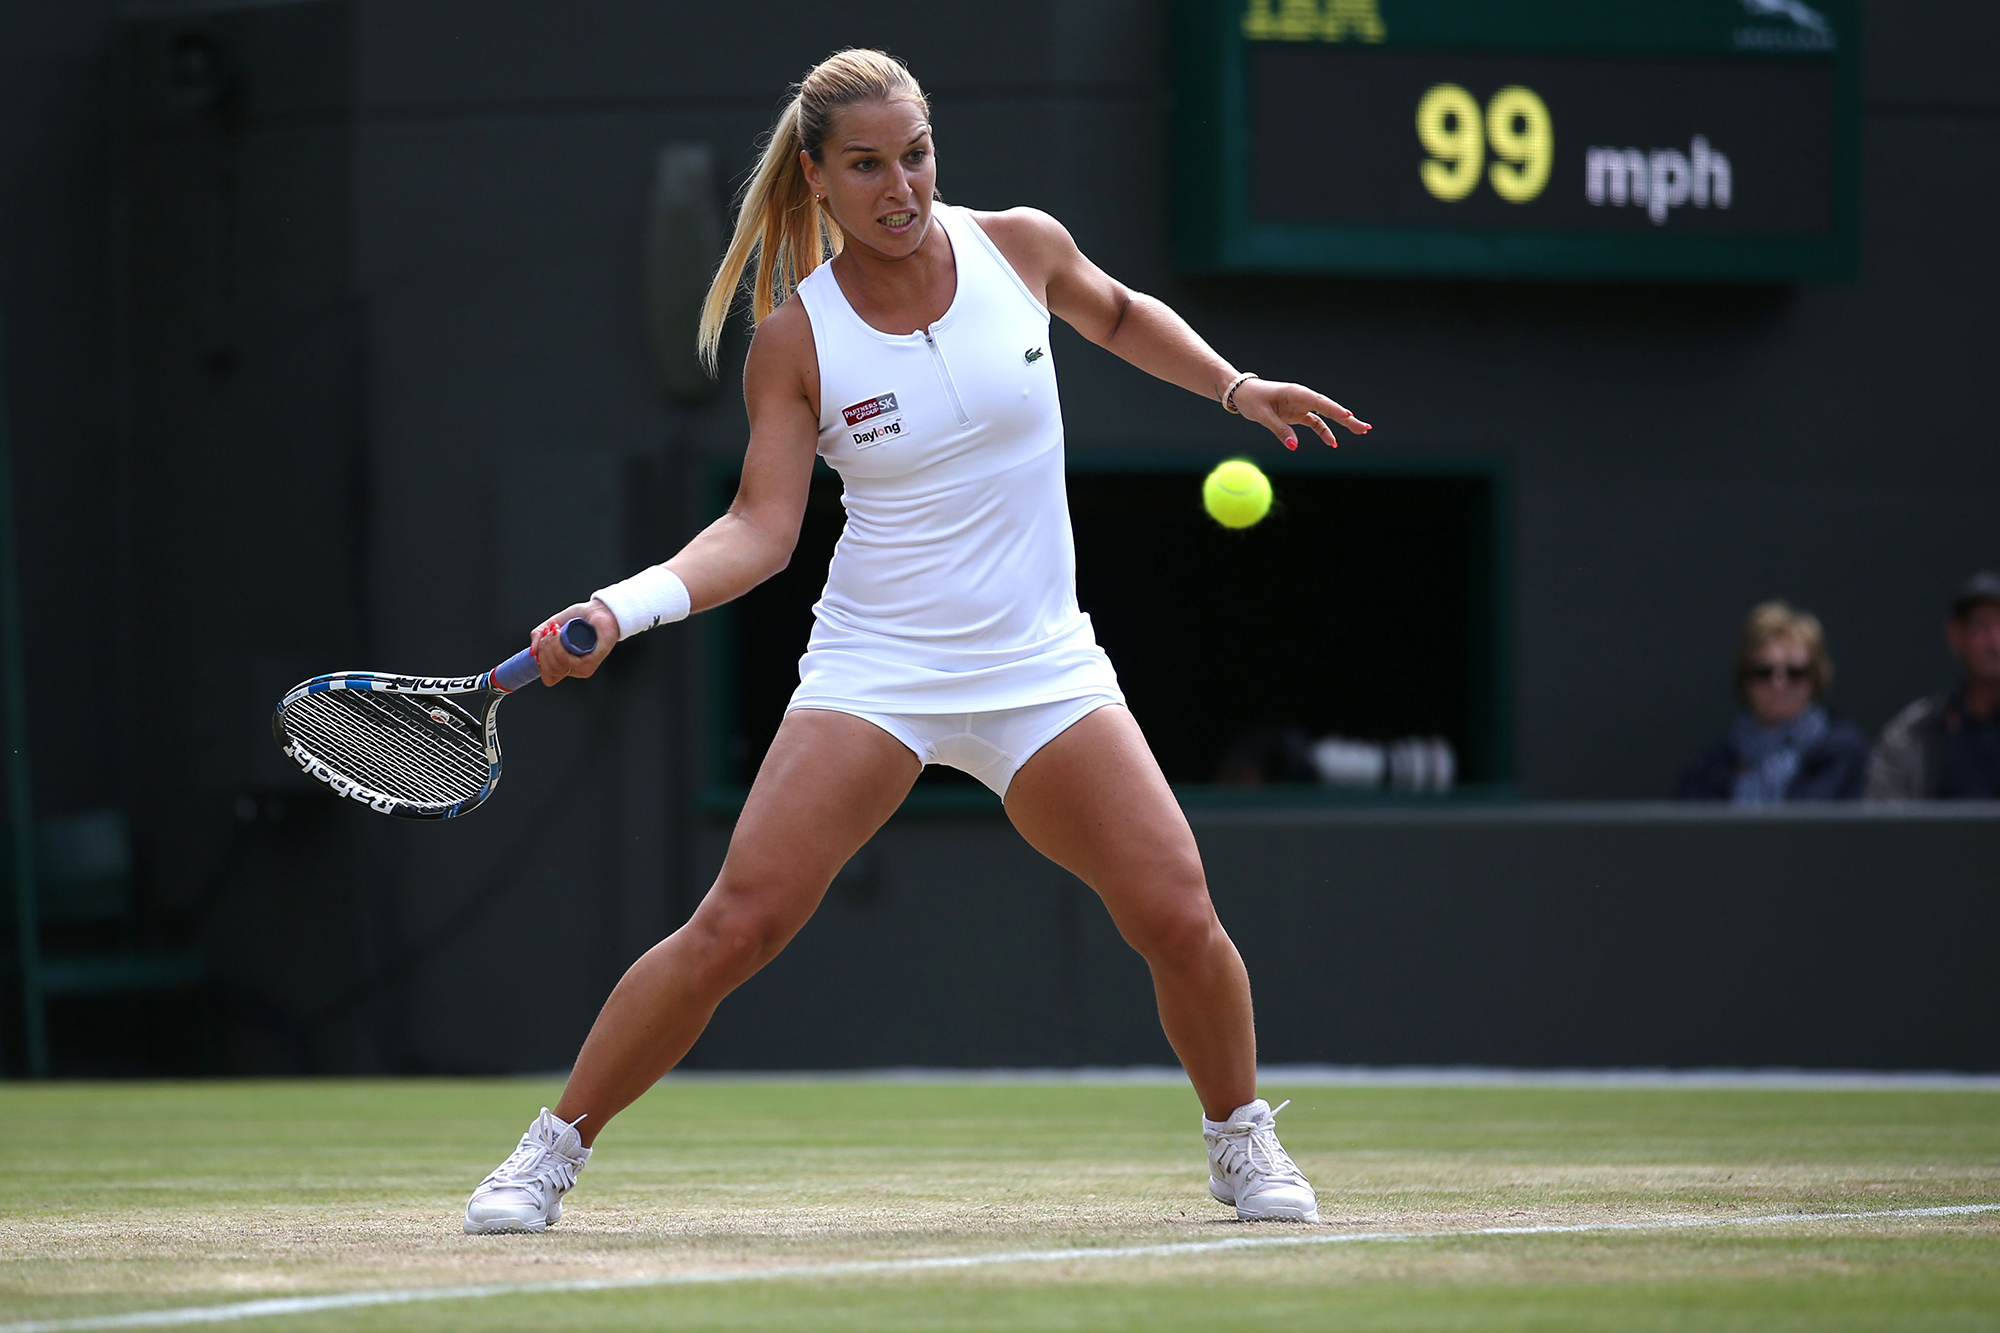 Slovakia's Dominika Cibulkova returns to Russia's Elena Vesnina during their women's singles quarter-final match on the ninth day of the 2016 Wimbledon Championships at The All England Lawn Tennis Club in Wimbledon, southwest London, on July 5, 2016. (JUSTIN TALLIS/AFP/Getty Images)